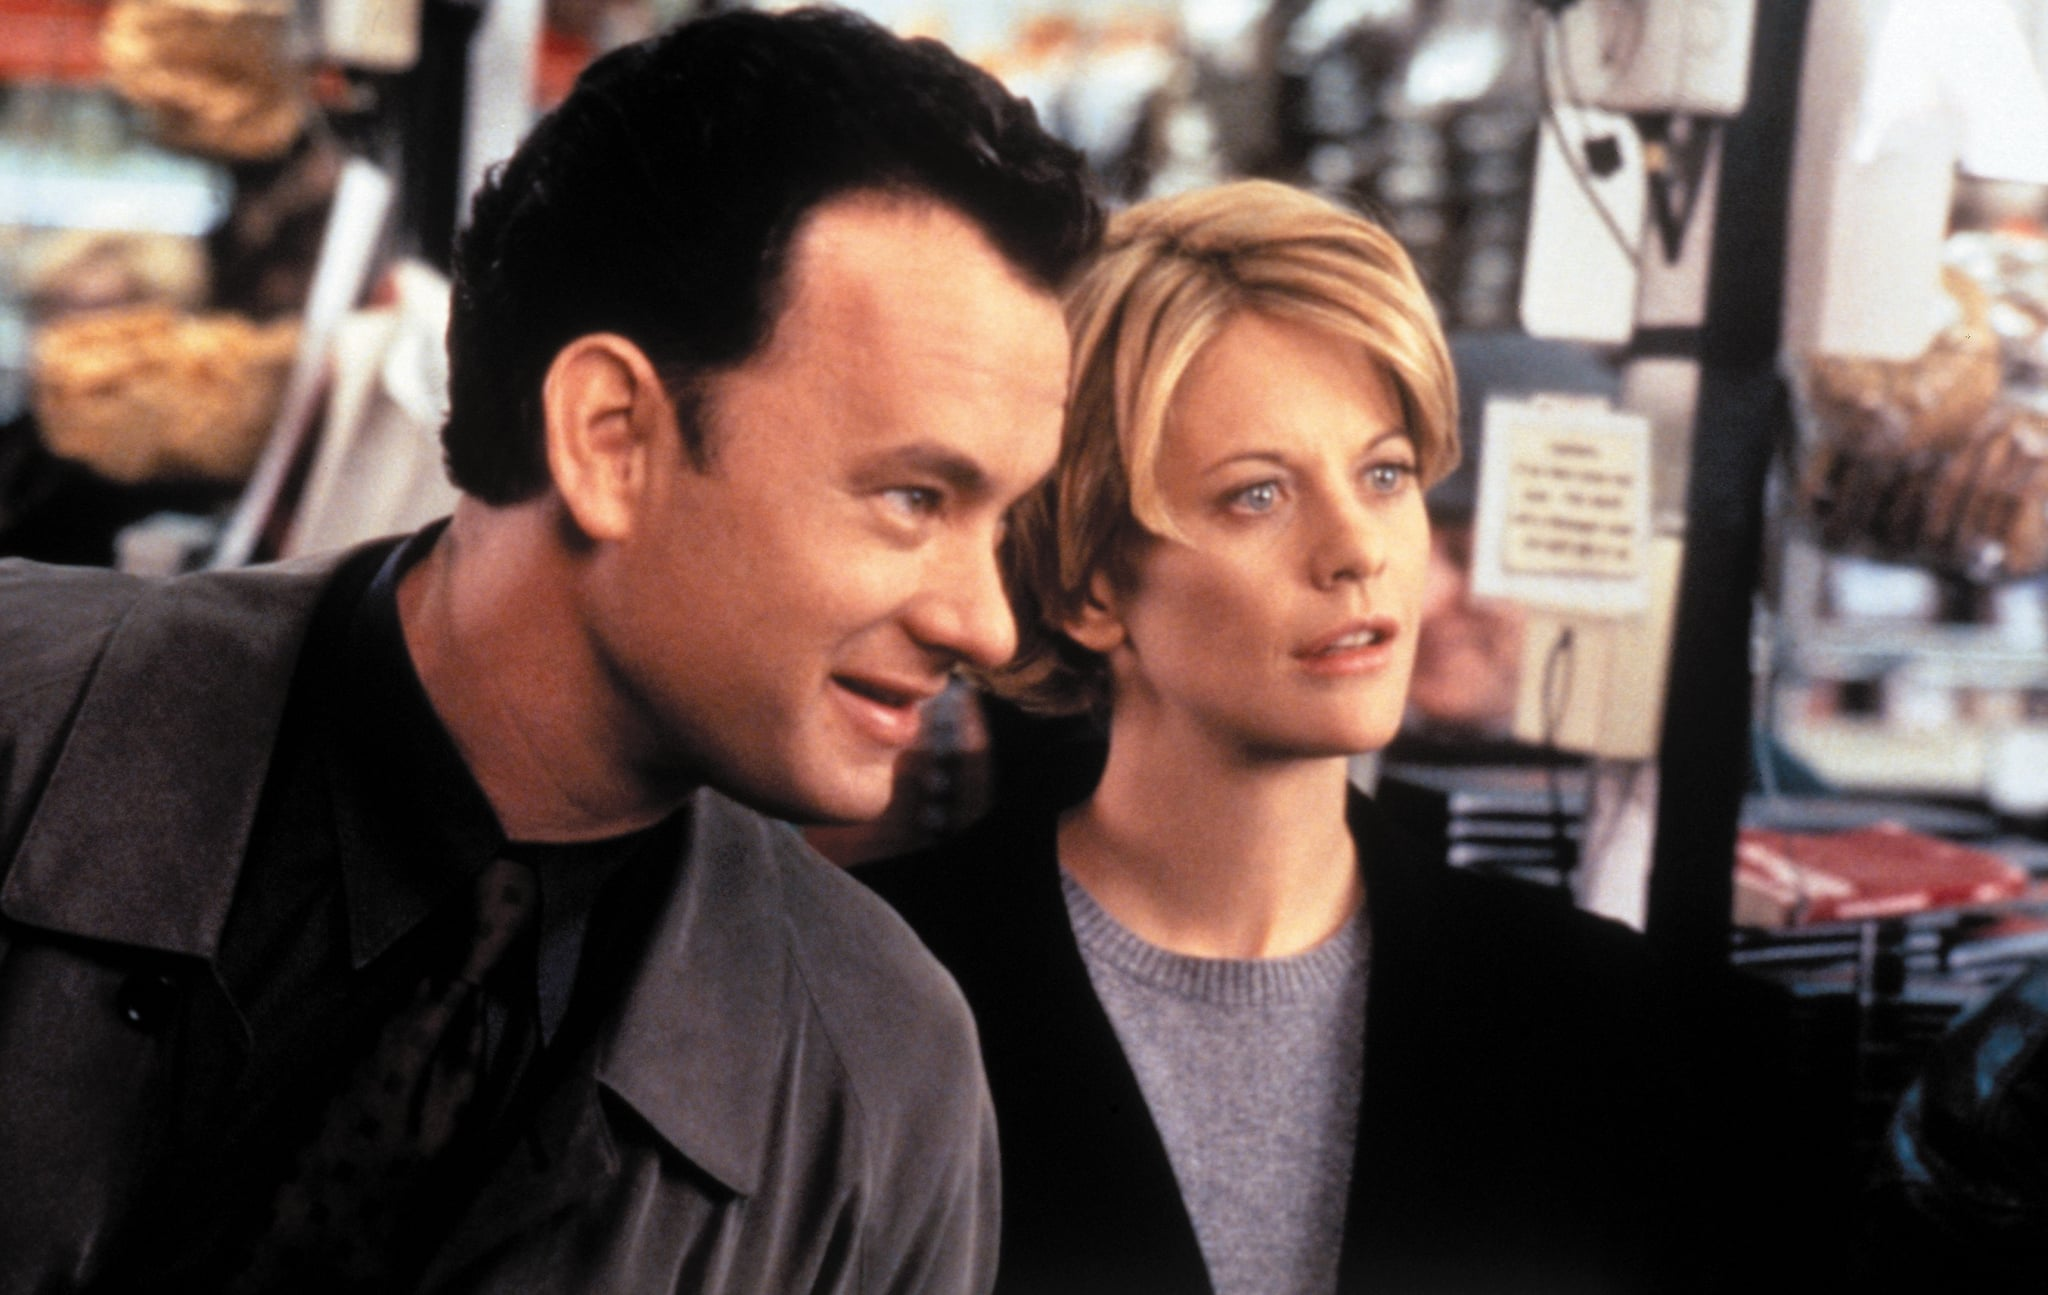 You Ve Got Mail 1998 144 Of The All Time Best 90s Movies How Many Have You Seen Popsugar Entertainment Photo 45